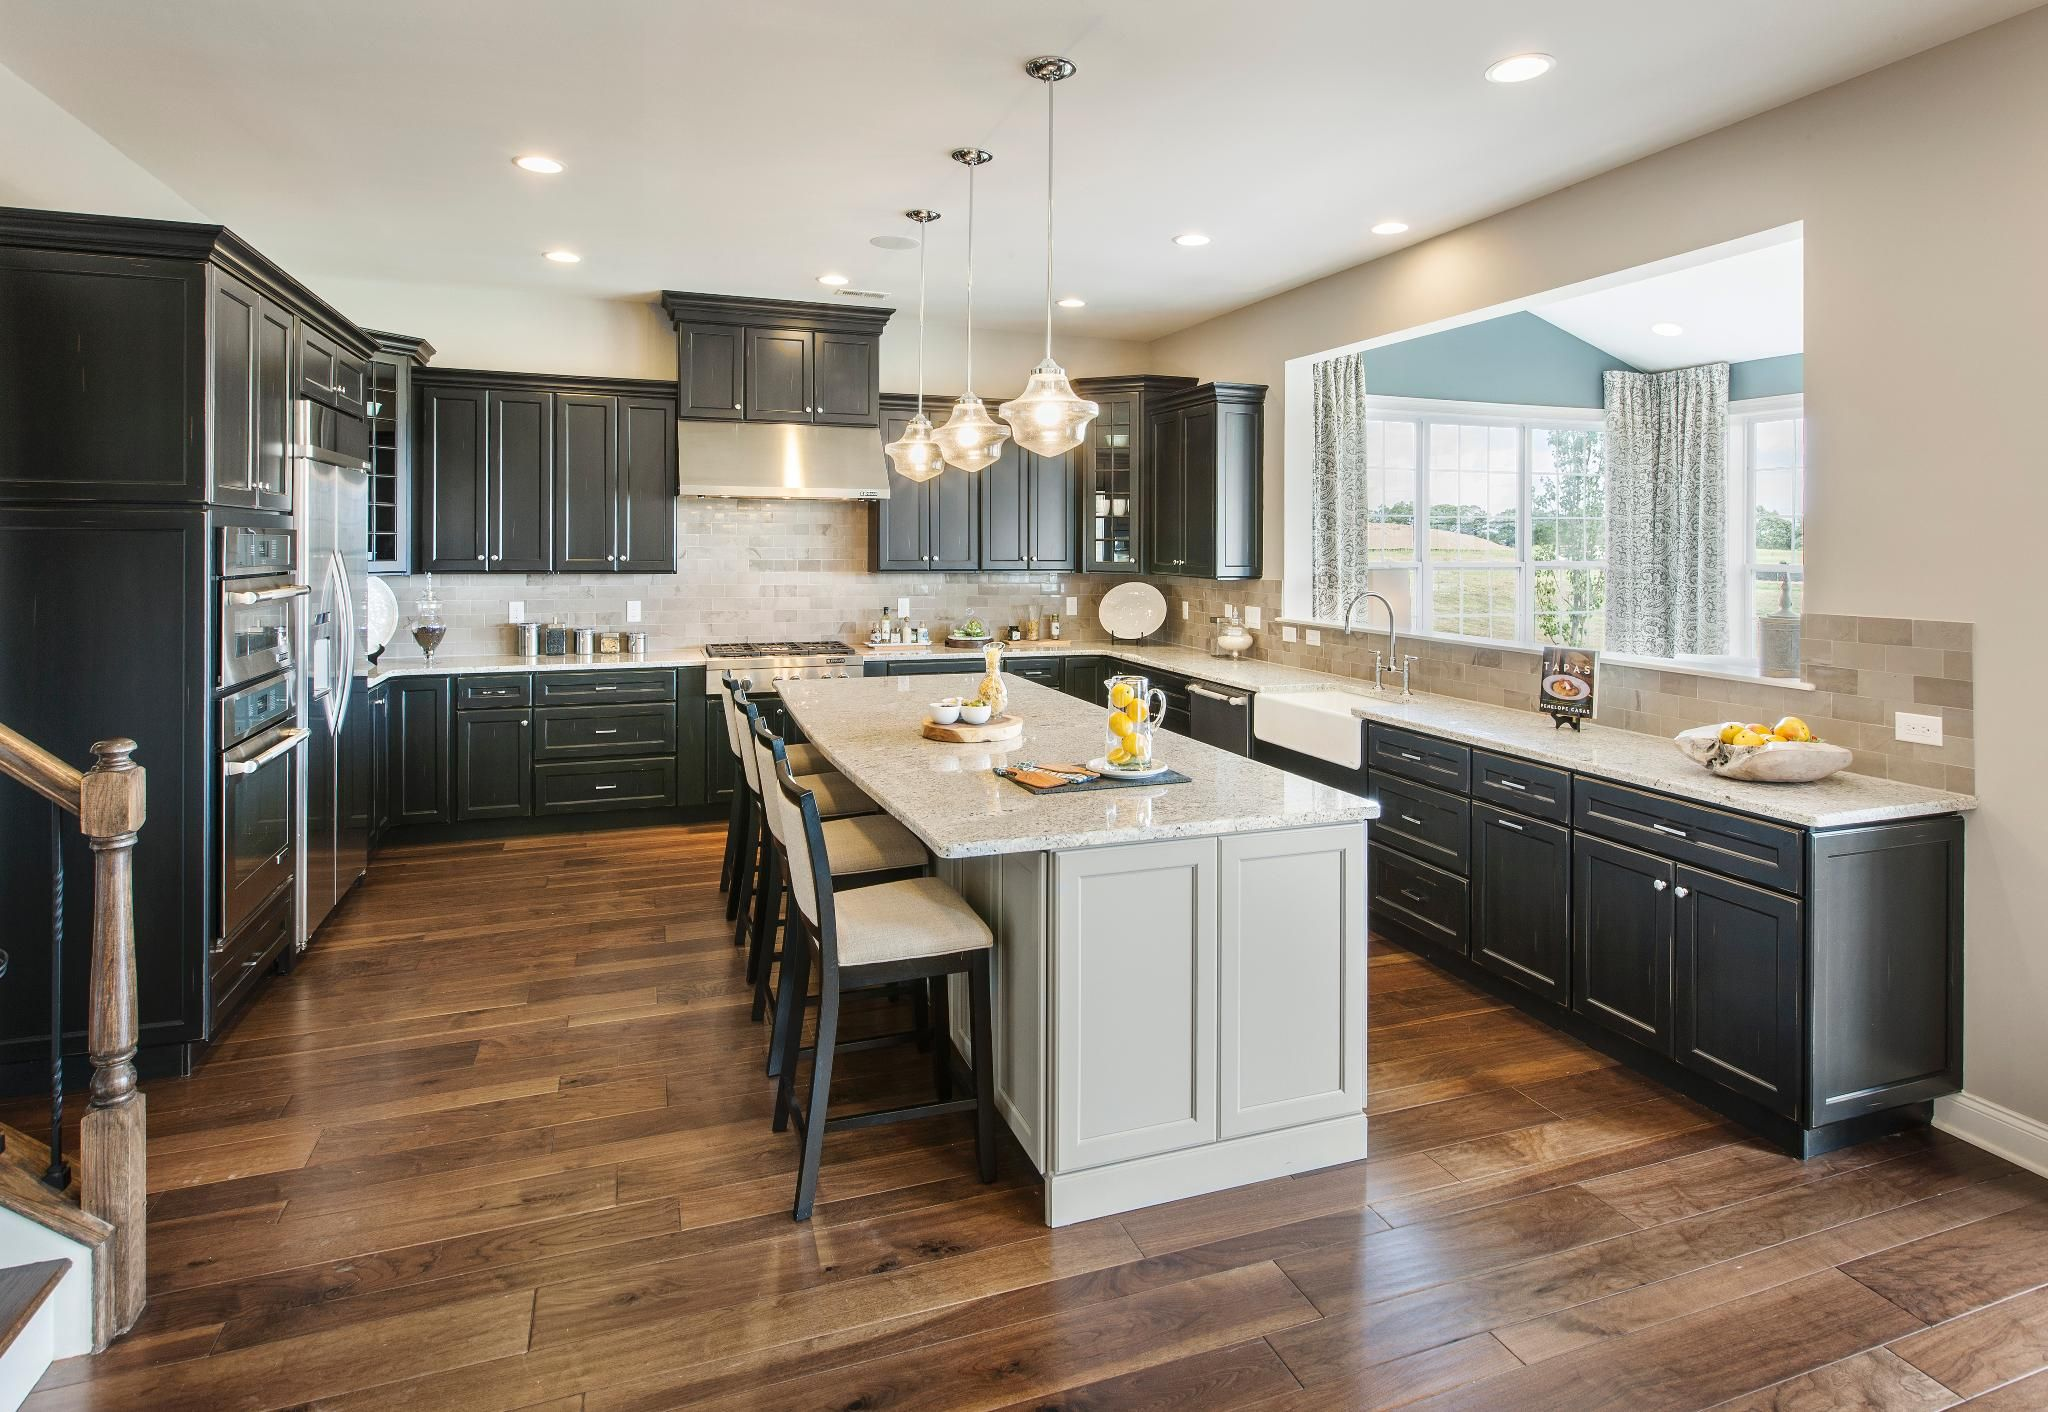 New Luxury Homes For Sale in New Castle, DE | High Pointe ...